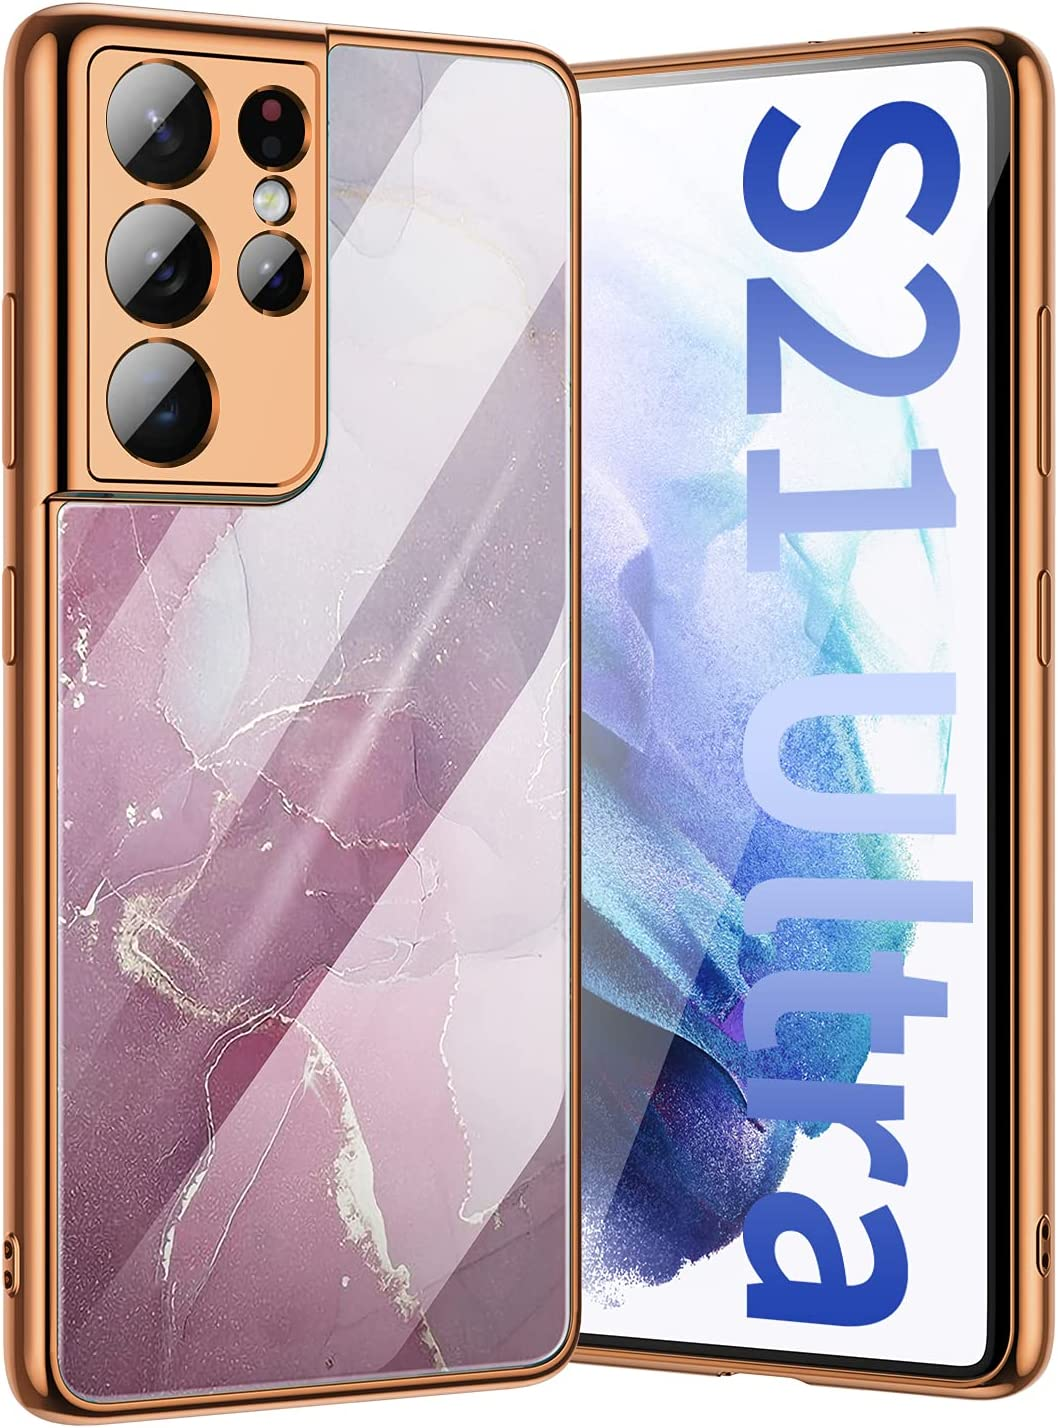 MIPCASE Samsung Galaxy S21 Ultra 5G Hard Glass Anti-Collision Glitter Marble Slim Protective Cover Phone Case 360 Degree Shockproof Cover TPU Strong Crash Cover for Samsung Galaxy S21 Ultra 6.8''